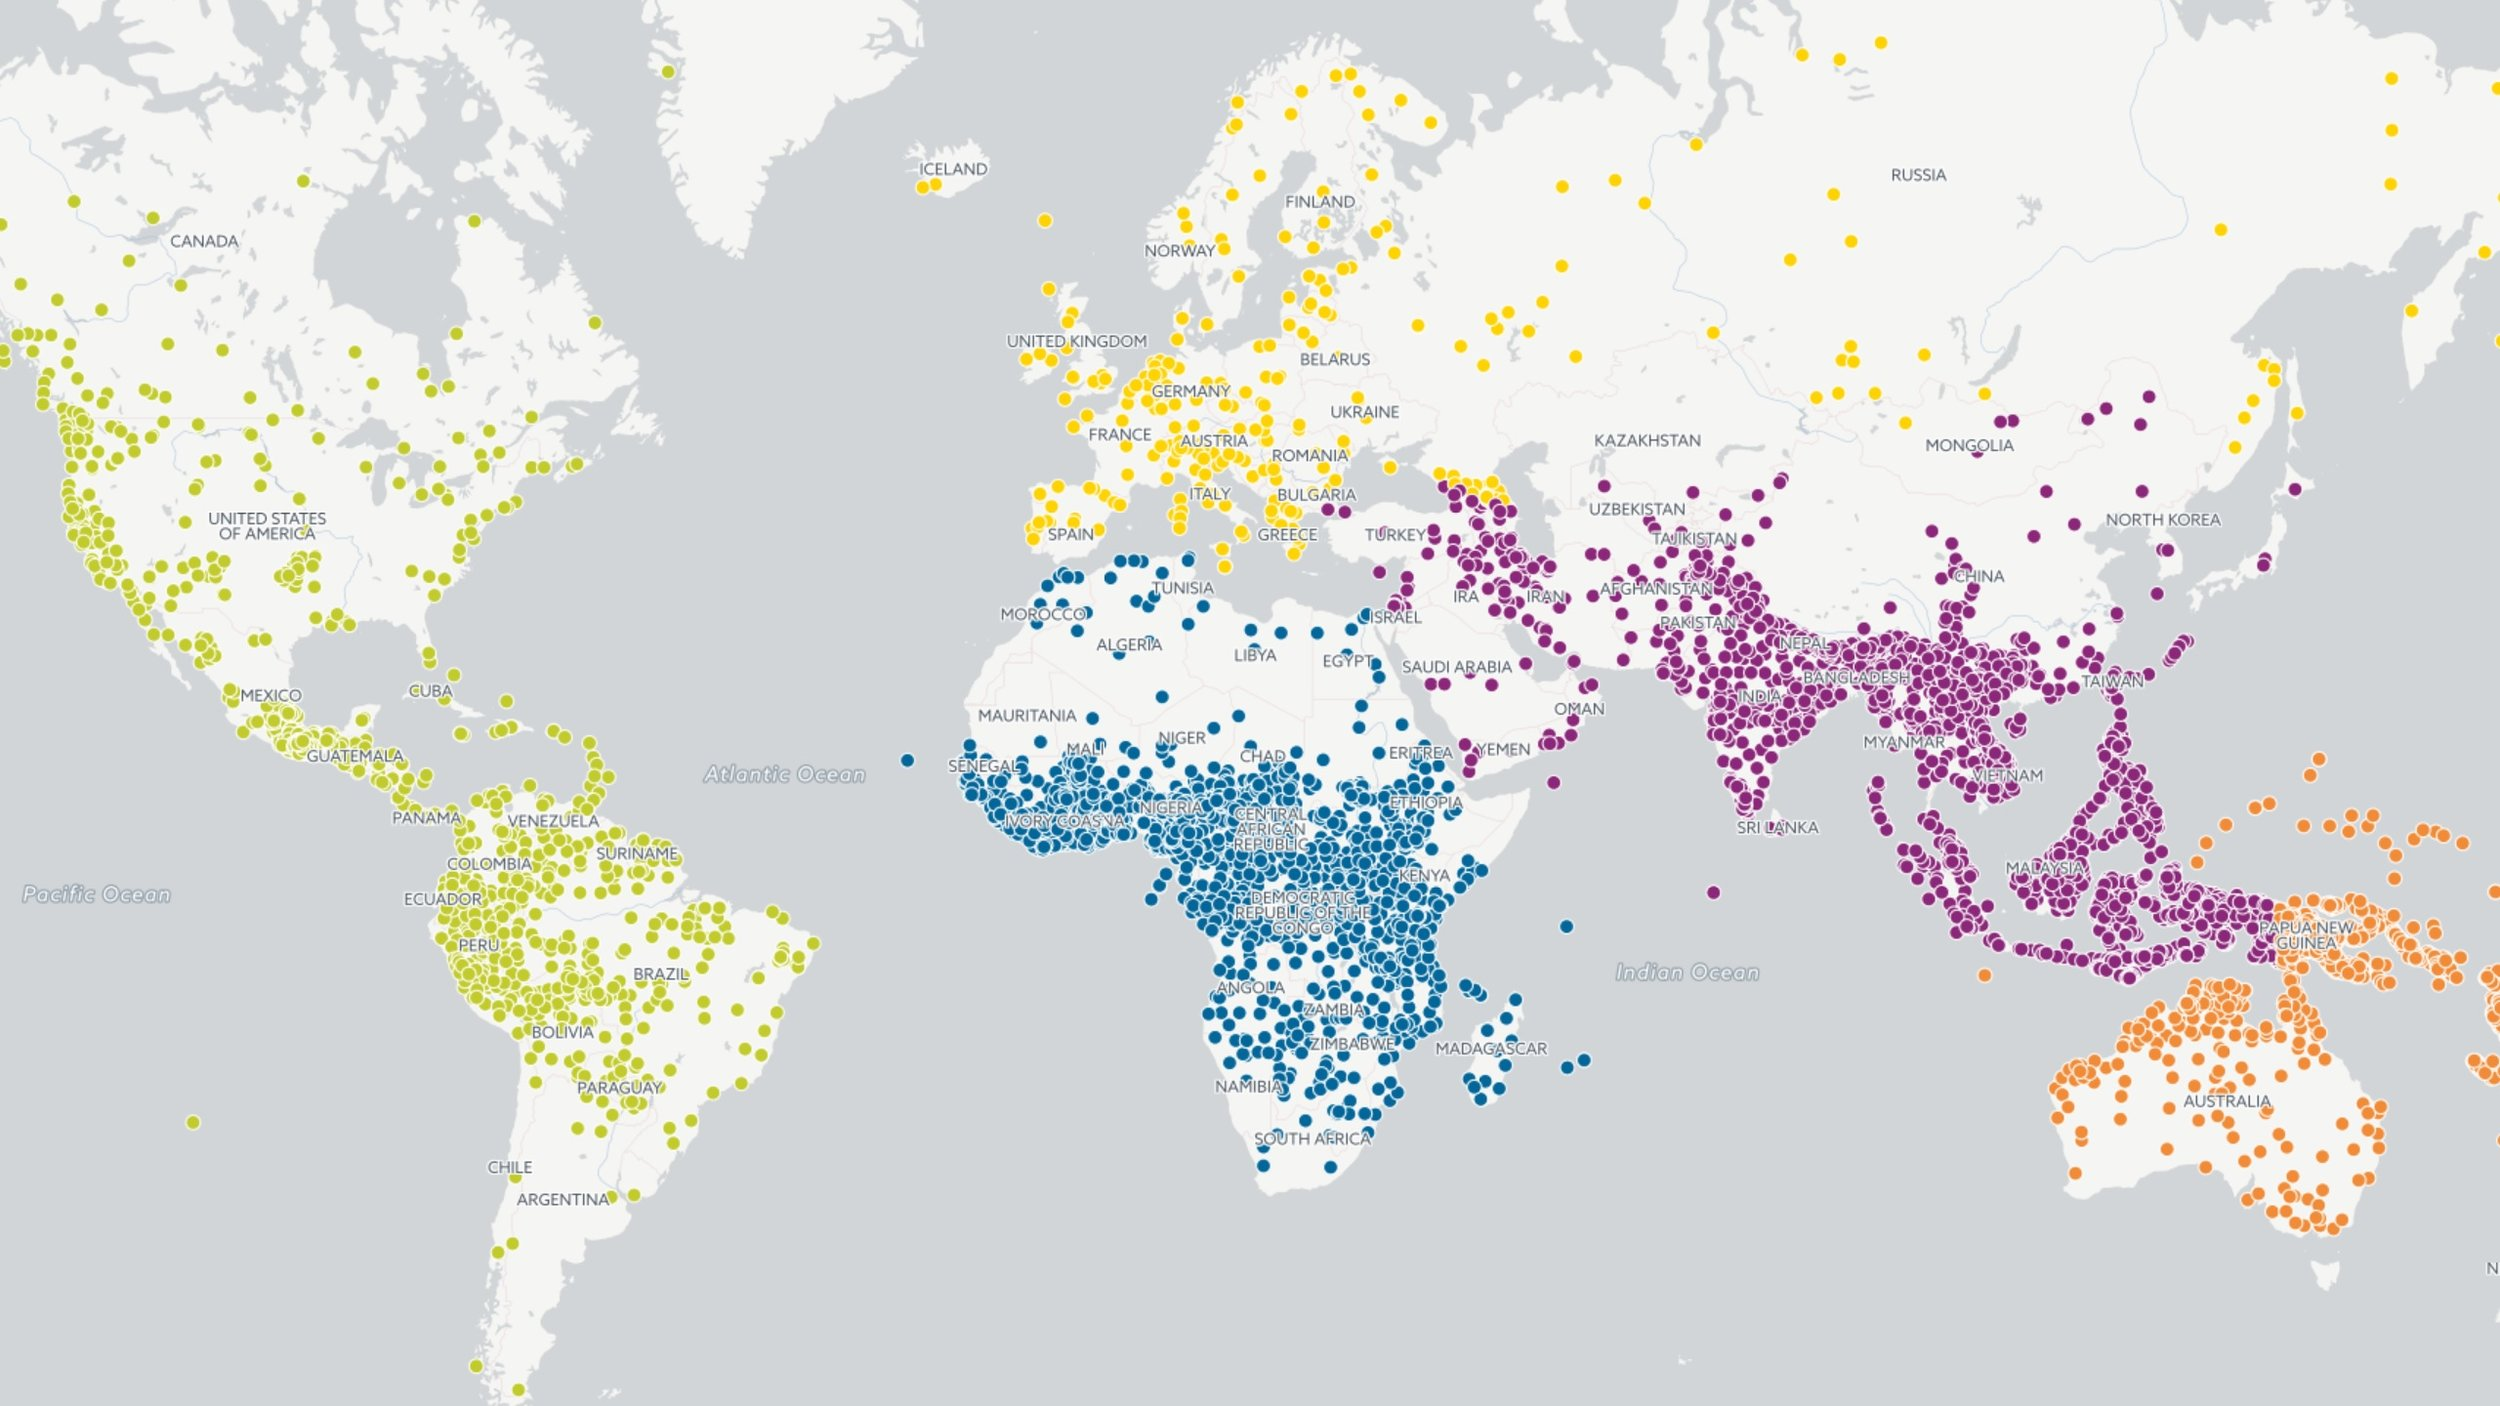 Languages in the World (Source:www.ethnologue.com)